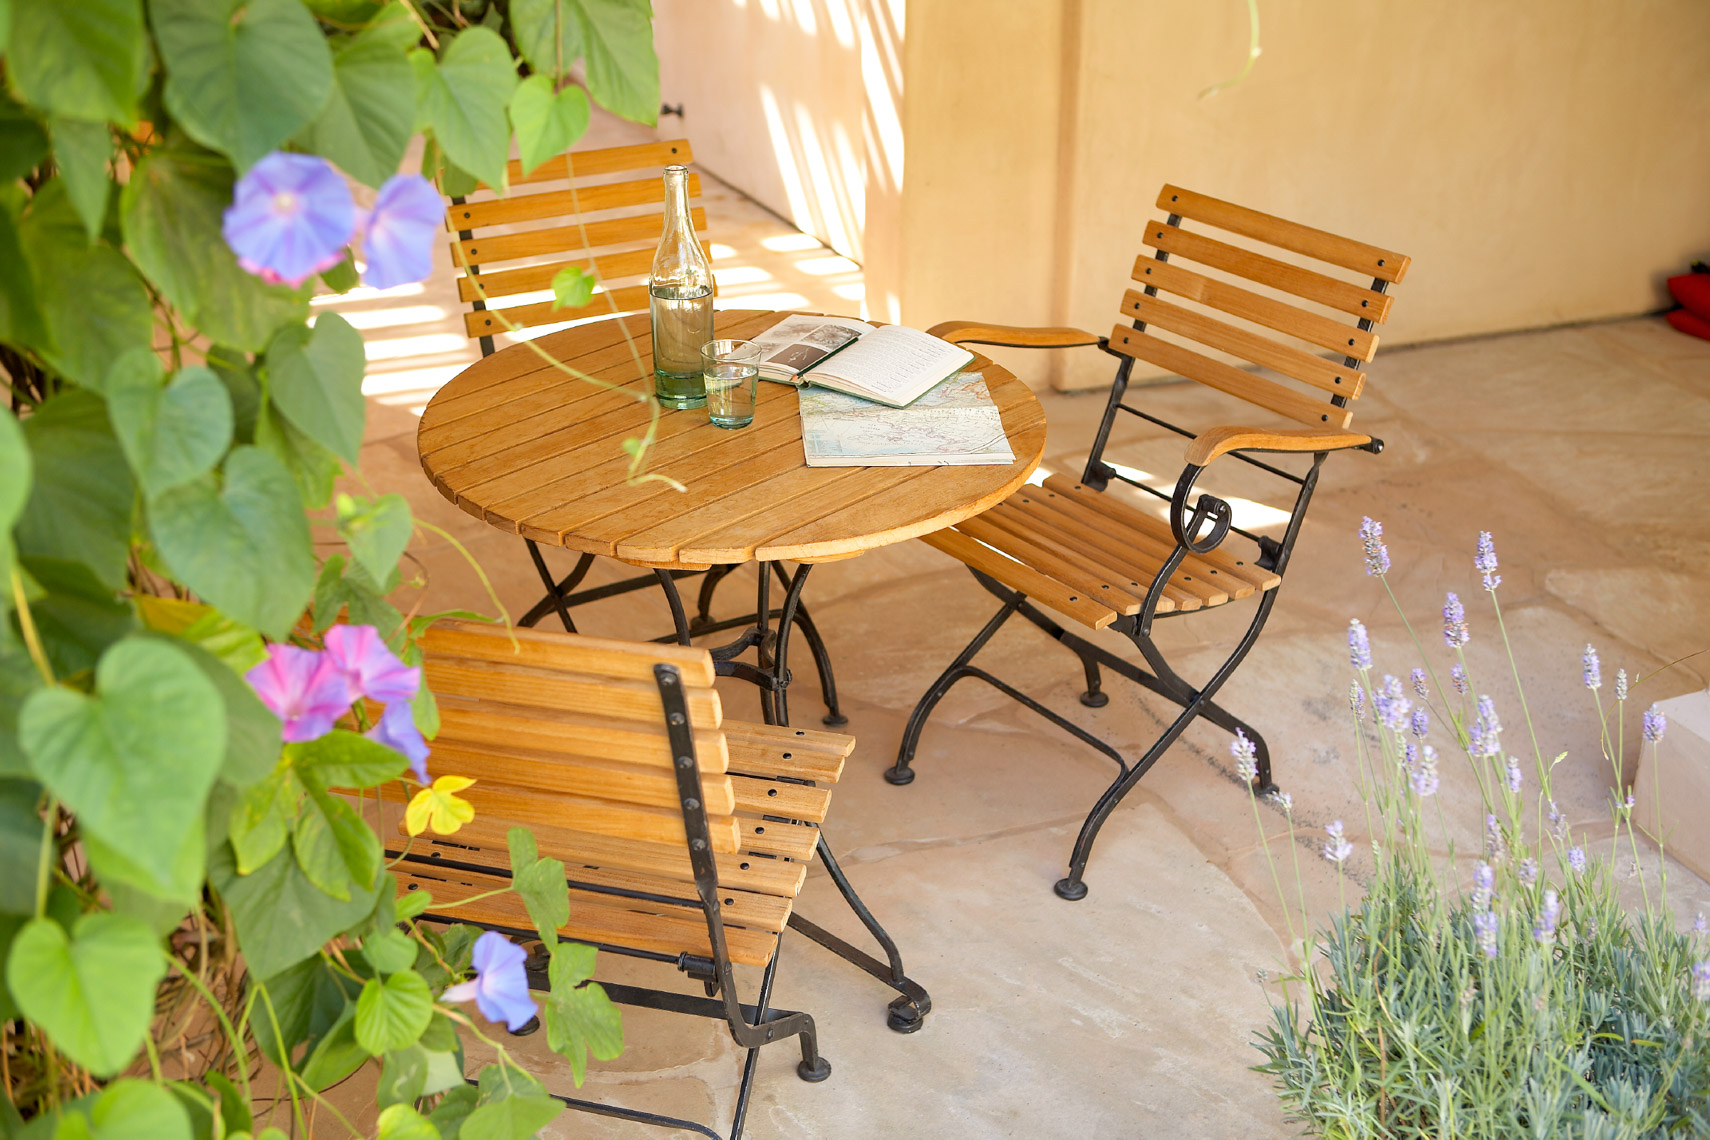 Wood and metal cafe furniture on stone patio San Francisco product photographer